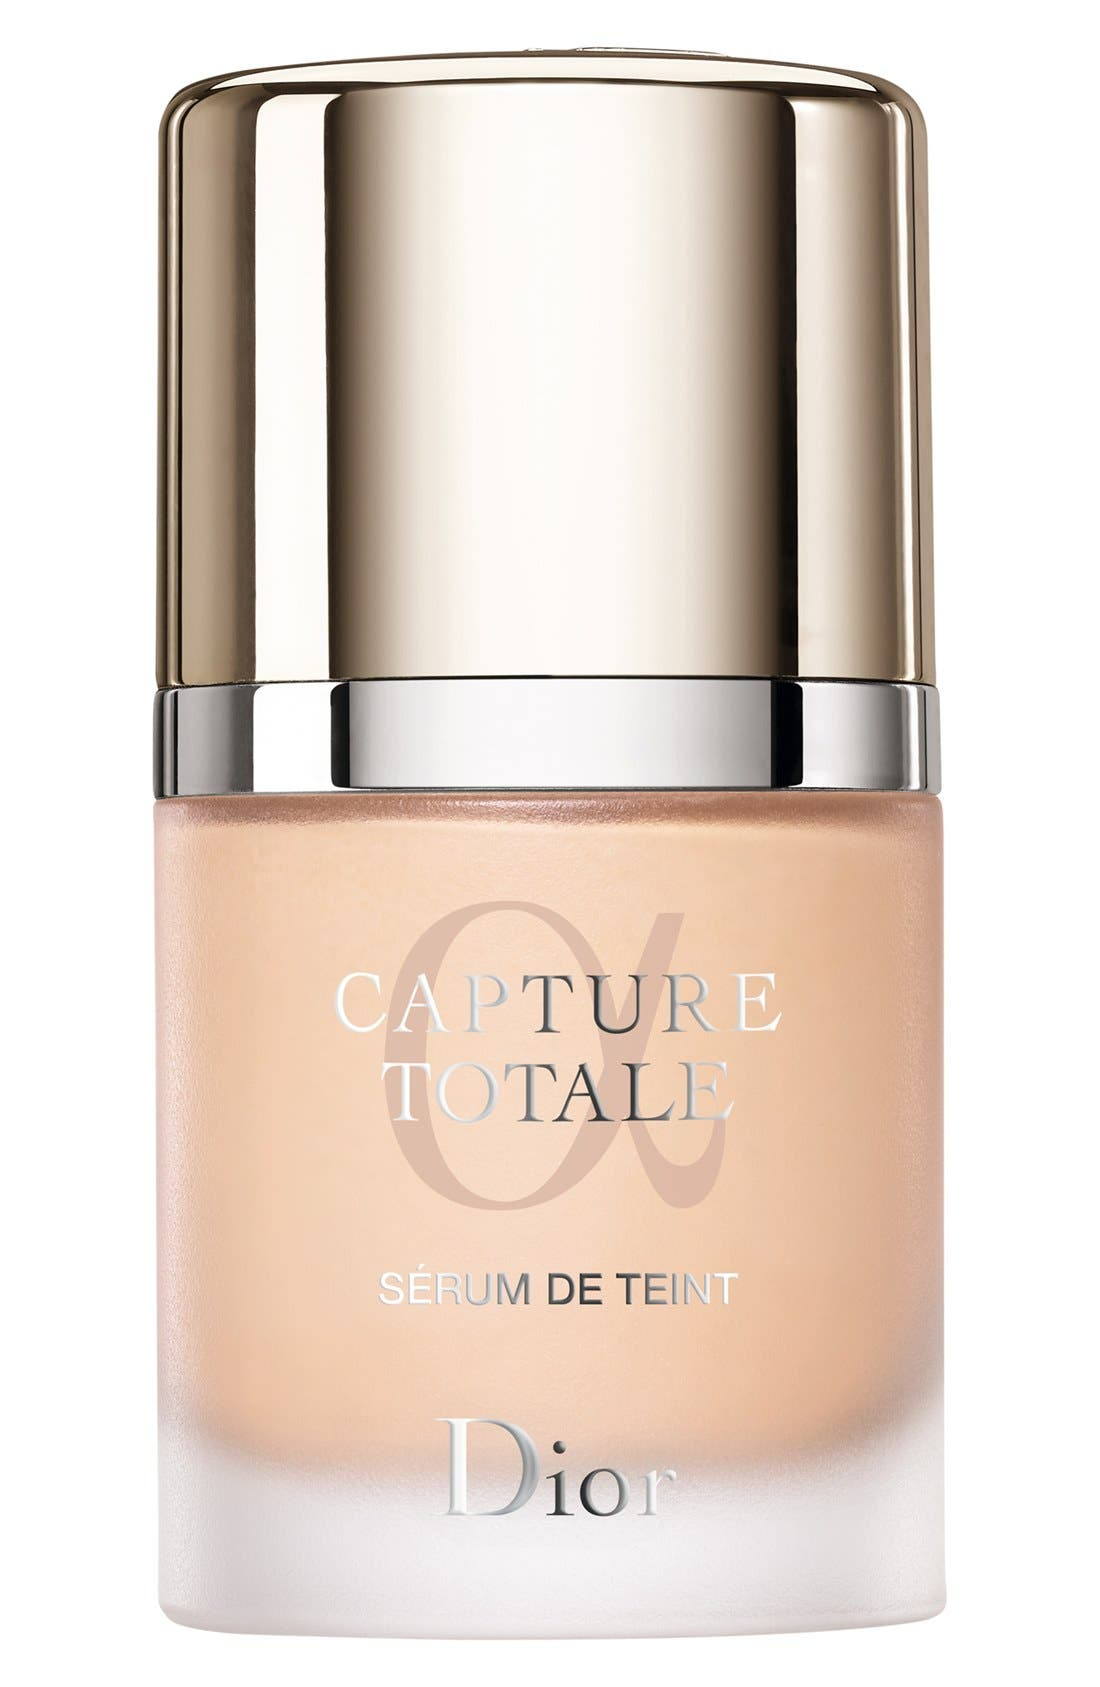 Capture Totale Foundation SPF 25,                         Main,                         color, 010 IVORY